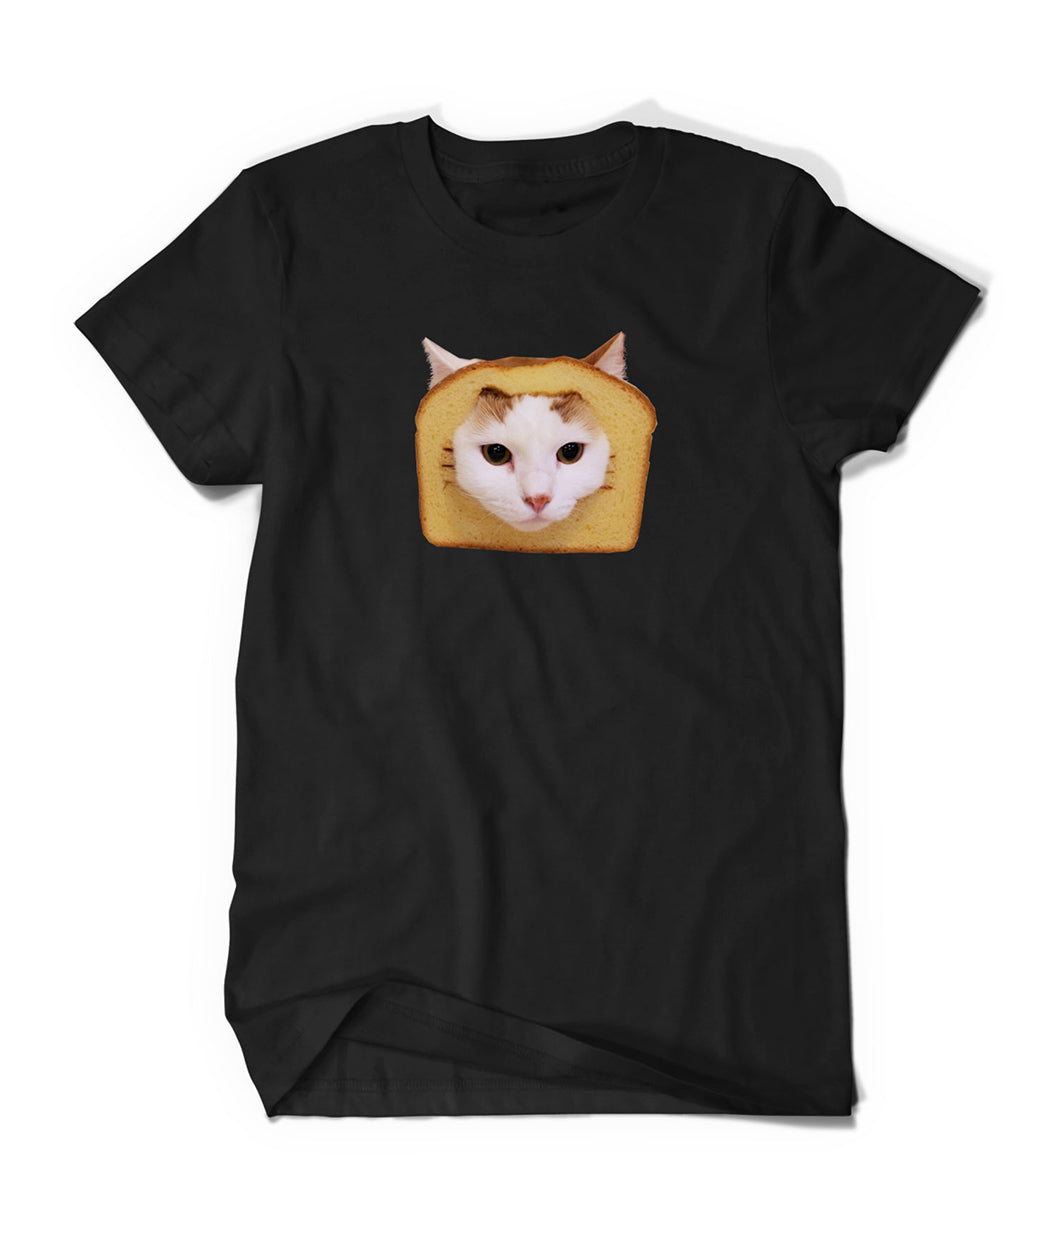 Cat Bread Shirt